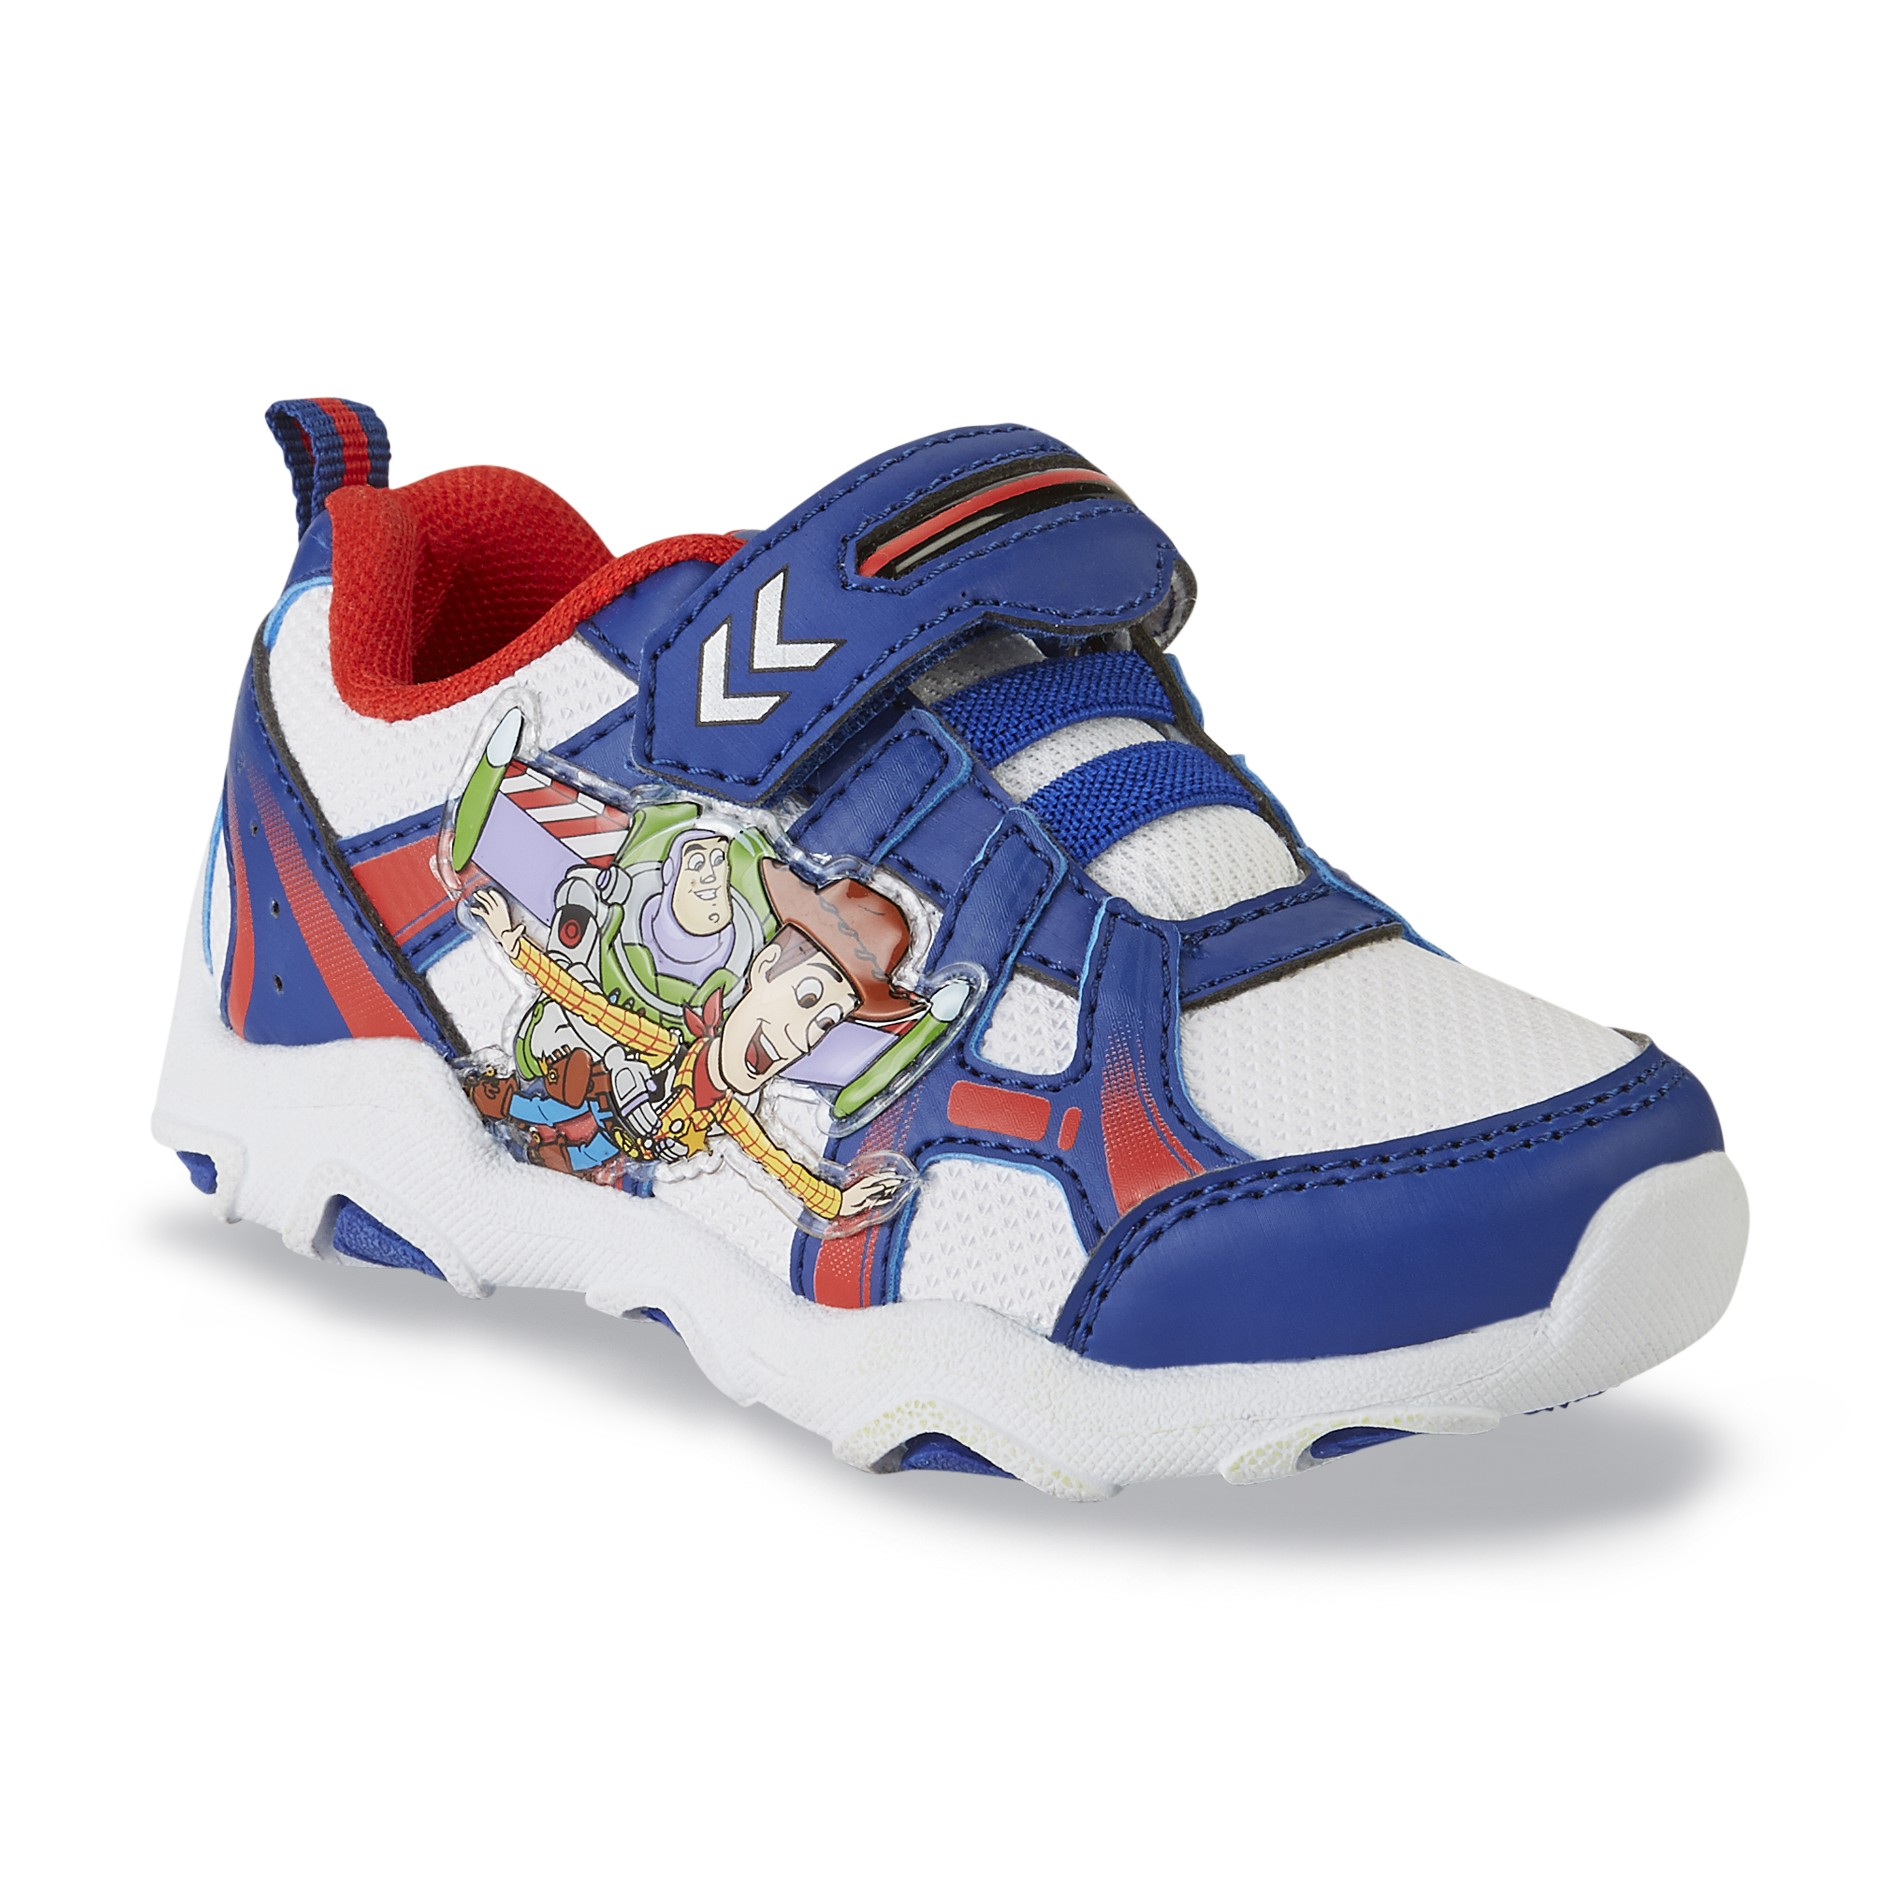 Disney Toddler Boy's Toy Story Navy/Red Sneaker